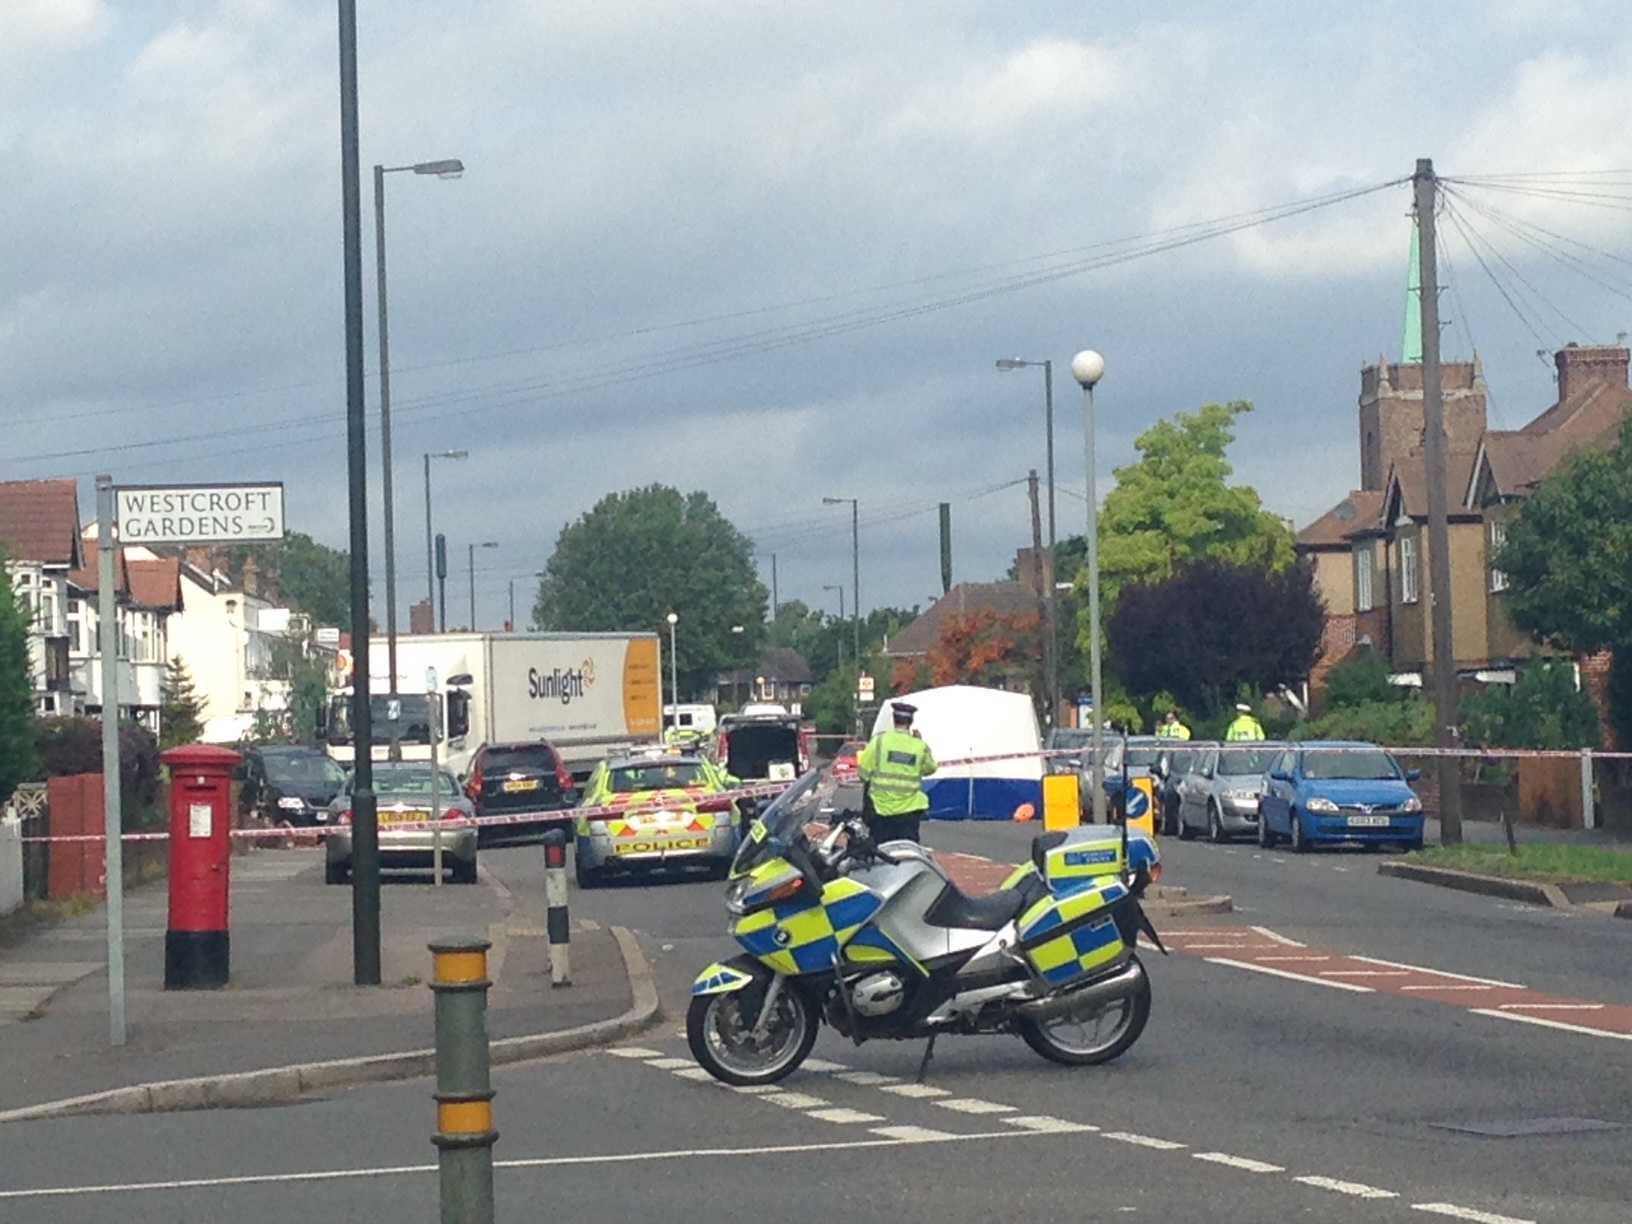 Emergency services from the London Ambulance Service and Air Ambulance attended, but the woman was pronounced dead. Picture: Anthony Cornish